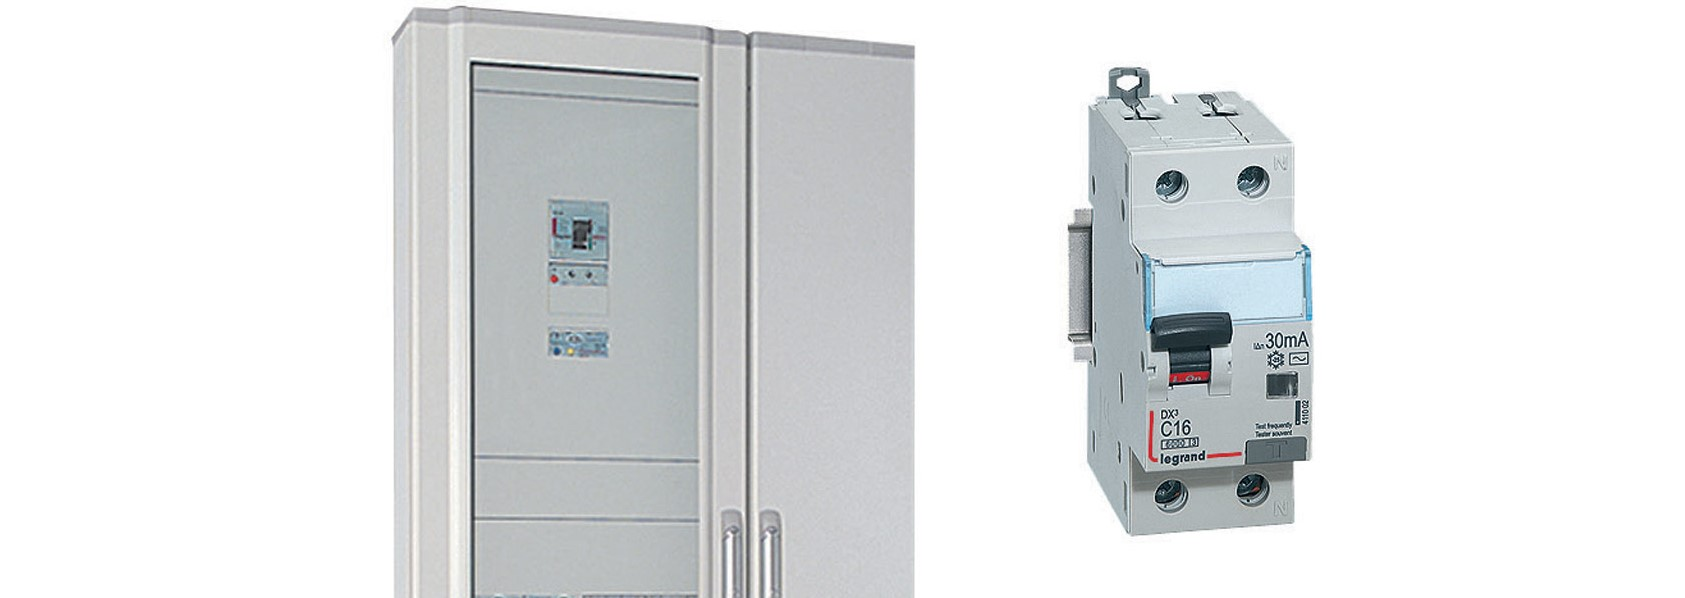 Distribution enclosures and circuit breakers